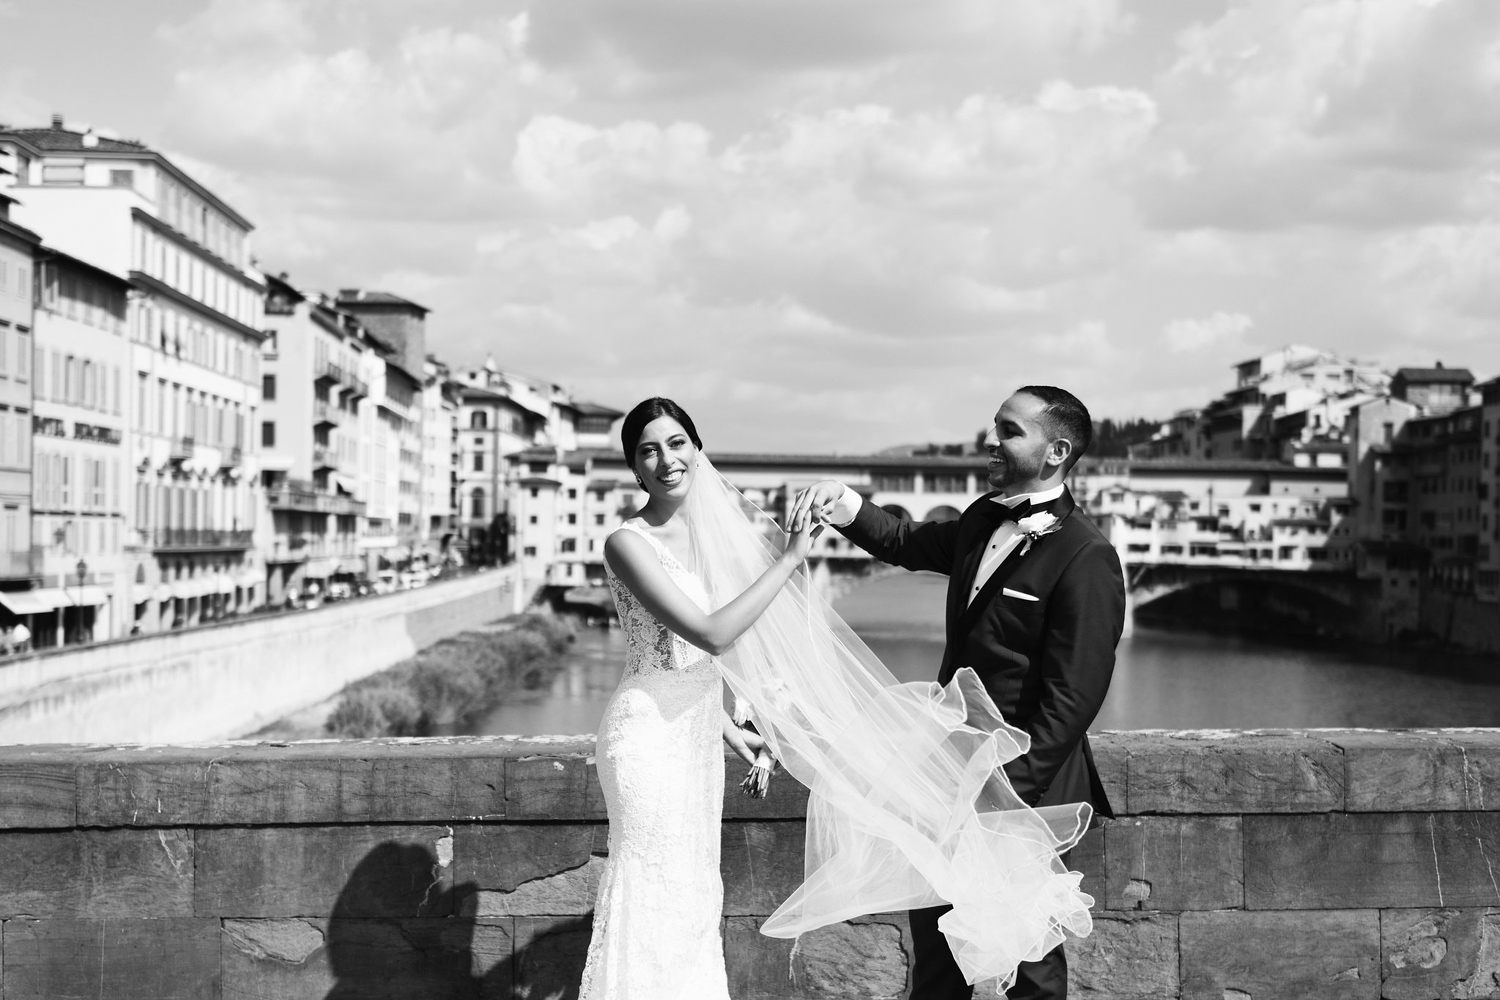 katie_mitchell_wedding_florence_tuscany_villa_di_miano_wedding_photography_32.jpg